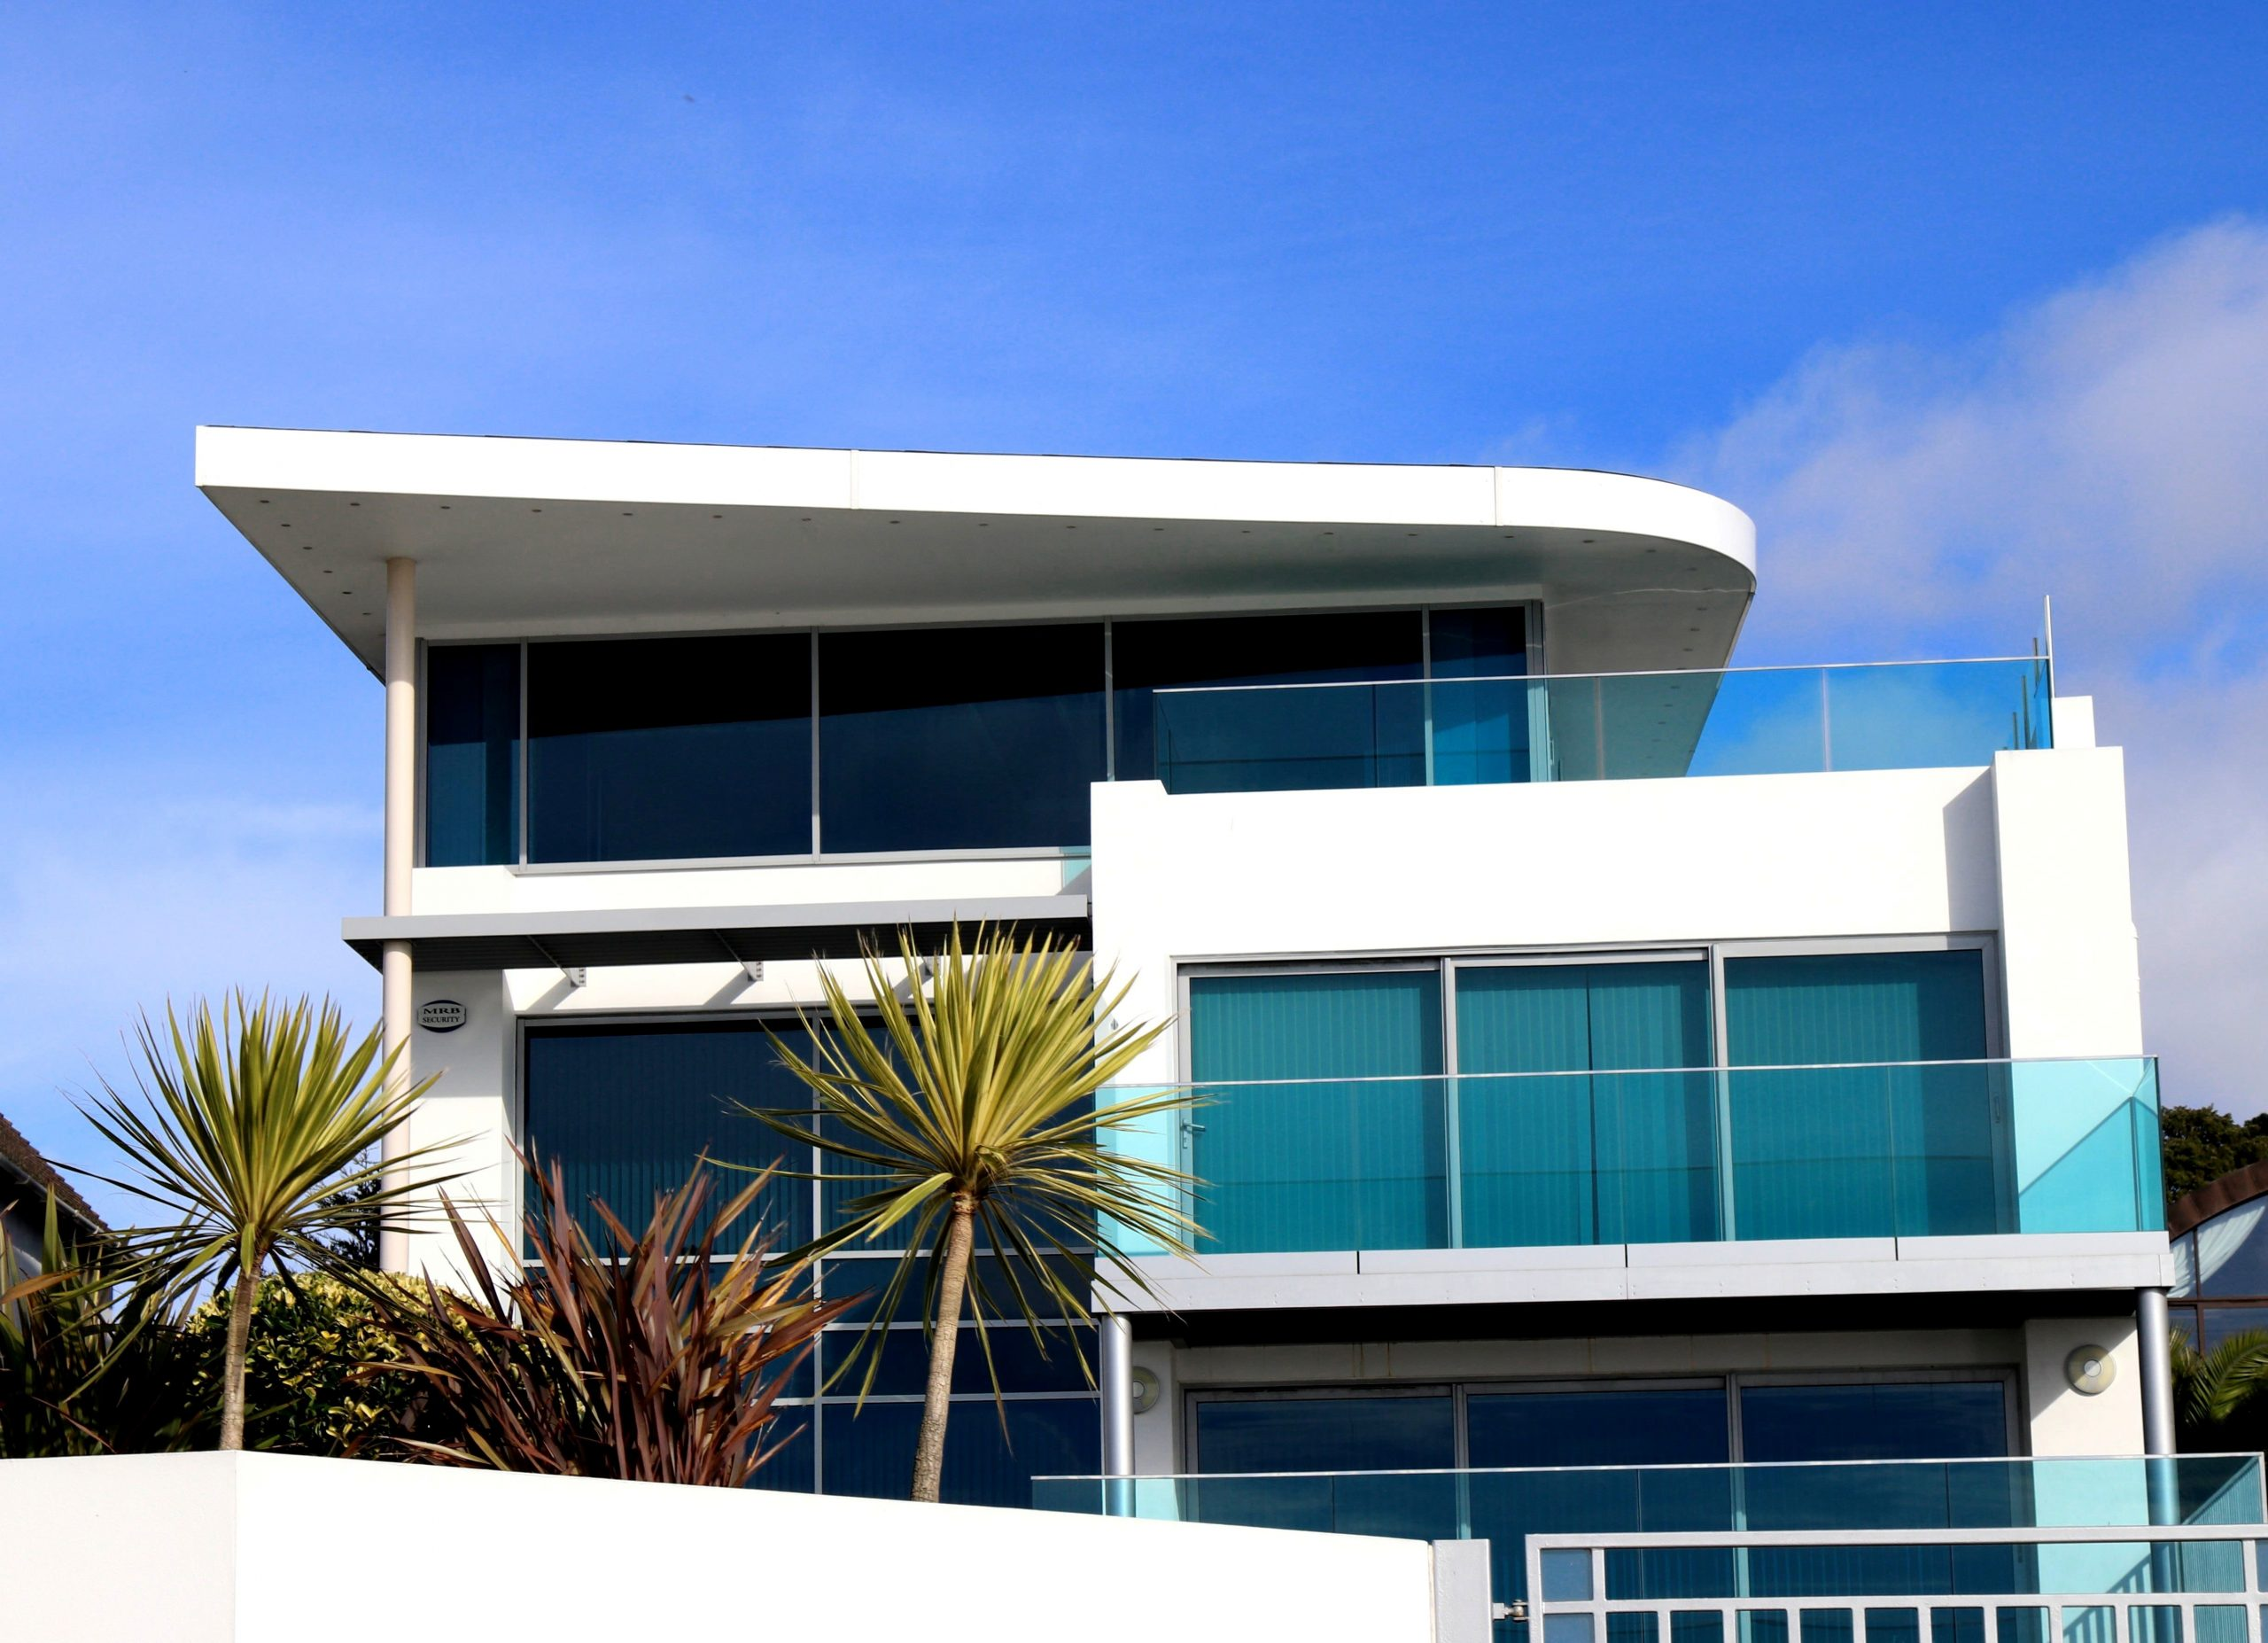 PERMIT FOR THE ACQUISITION OF PROPERTIES IN CYPRUS FOR NON-EU NATIONALS